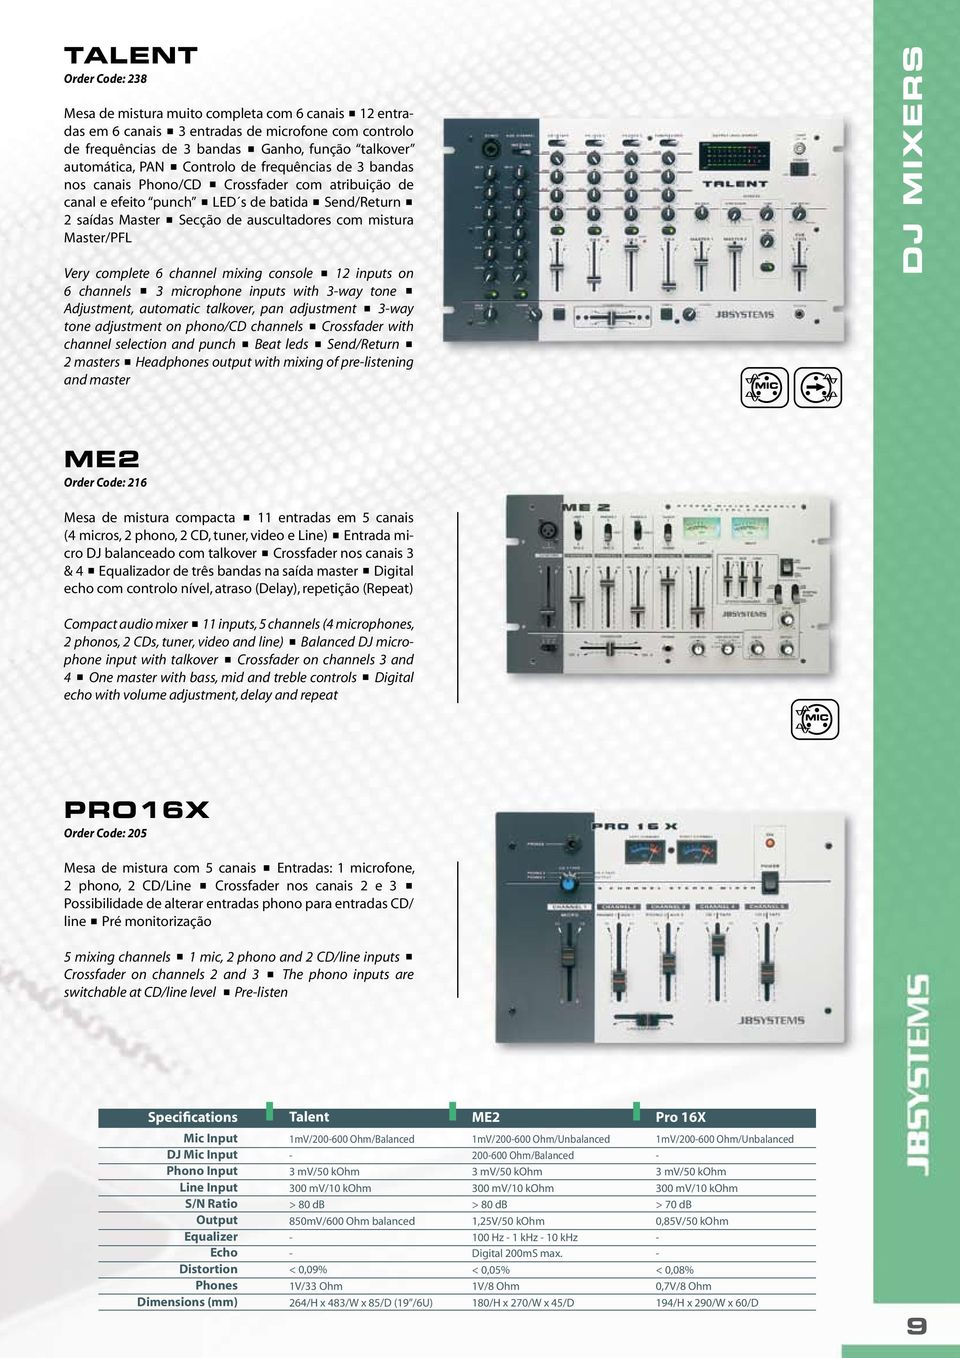 Master/PFL Very complete 6 channel mixing console < 12 inputs on 6 channels < 3 microphone inputs with 3-way tone < Adjustment, automatic talkover, pan adjustment < 3-way tone adjustment on phono/cd